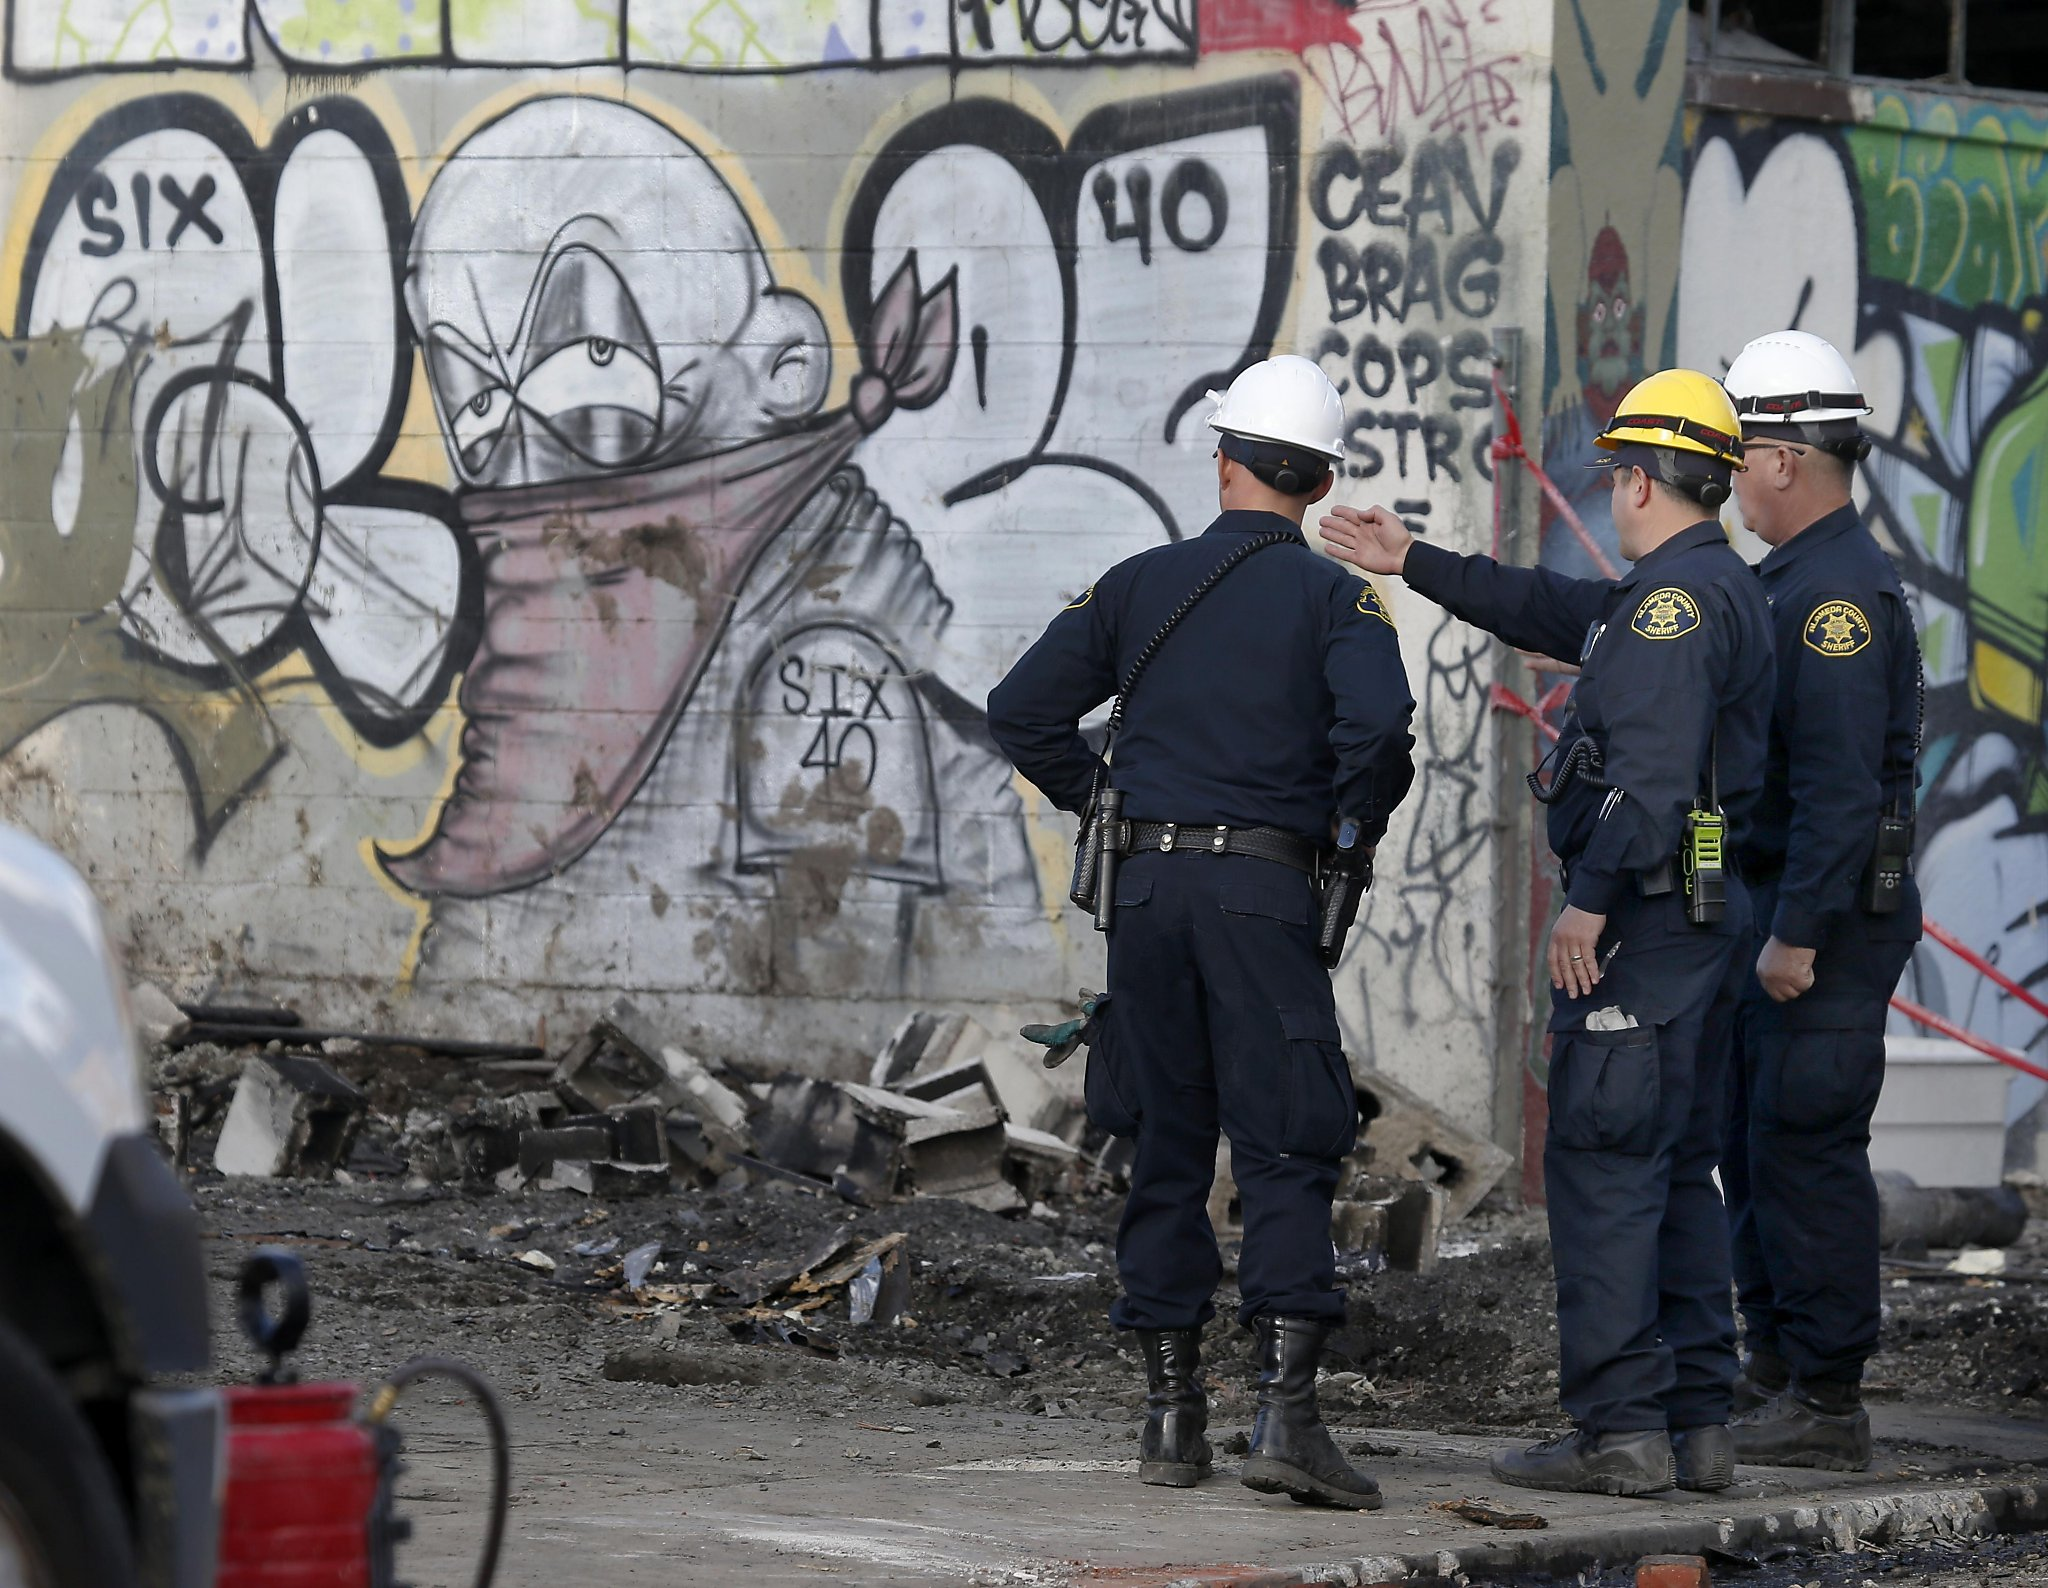 rawImage oakland fire was definitively not caused by fridge, atf says sfgate 1929 Oakland Brougham at gsmportal.co